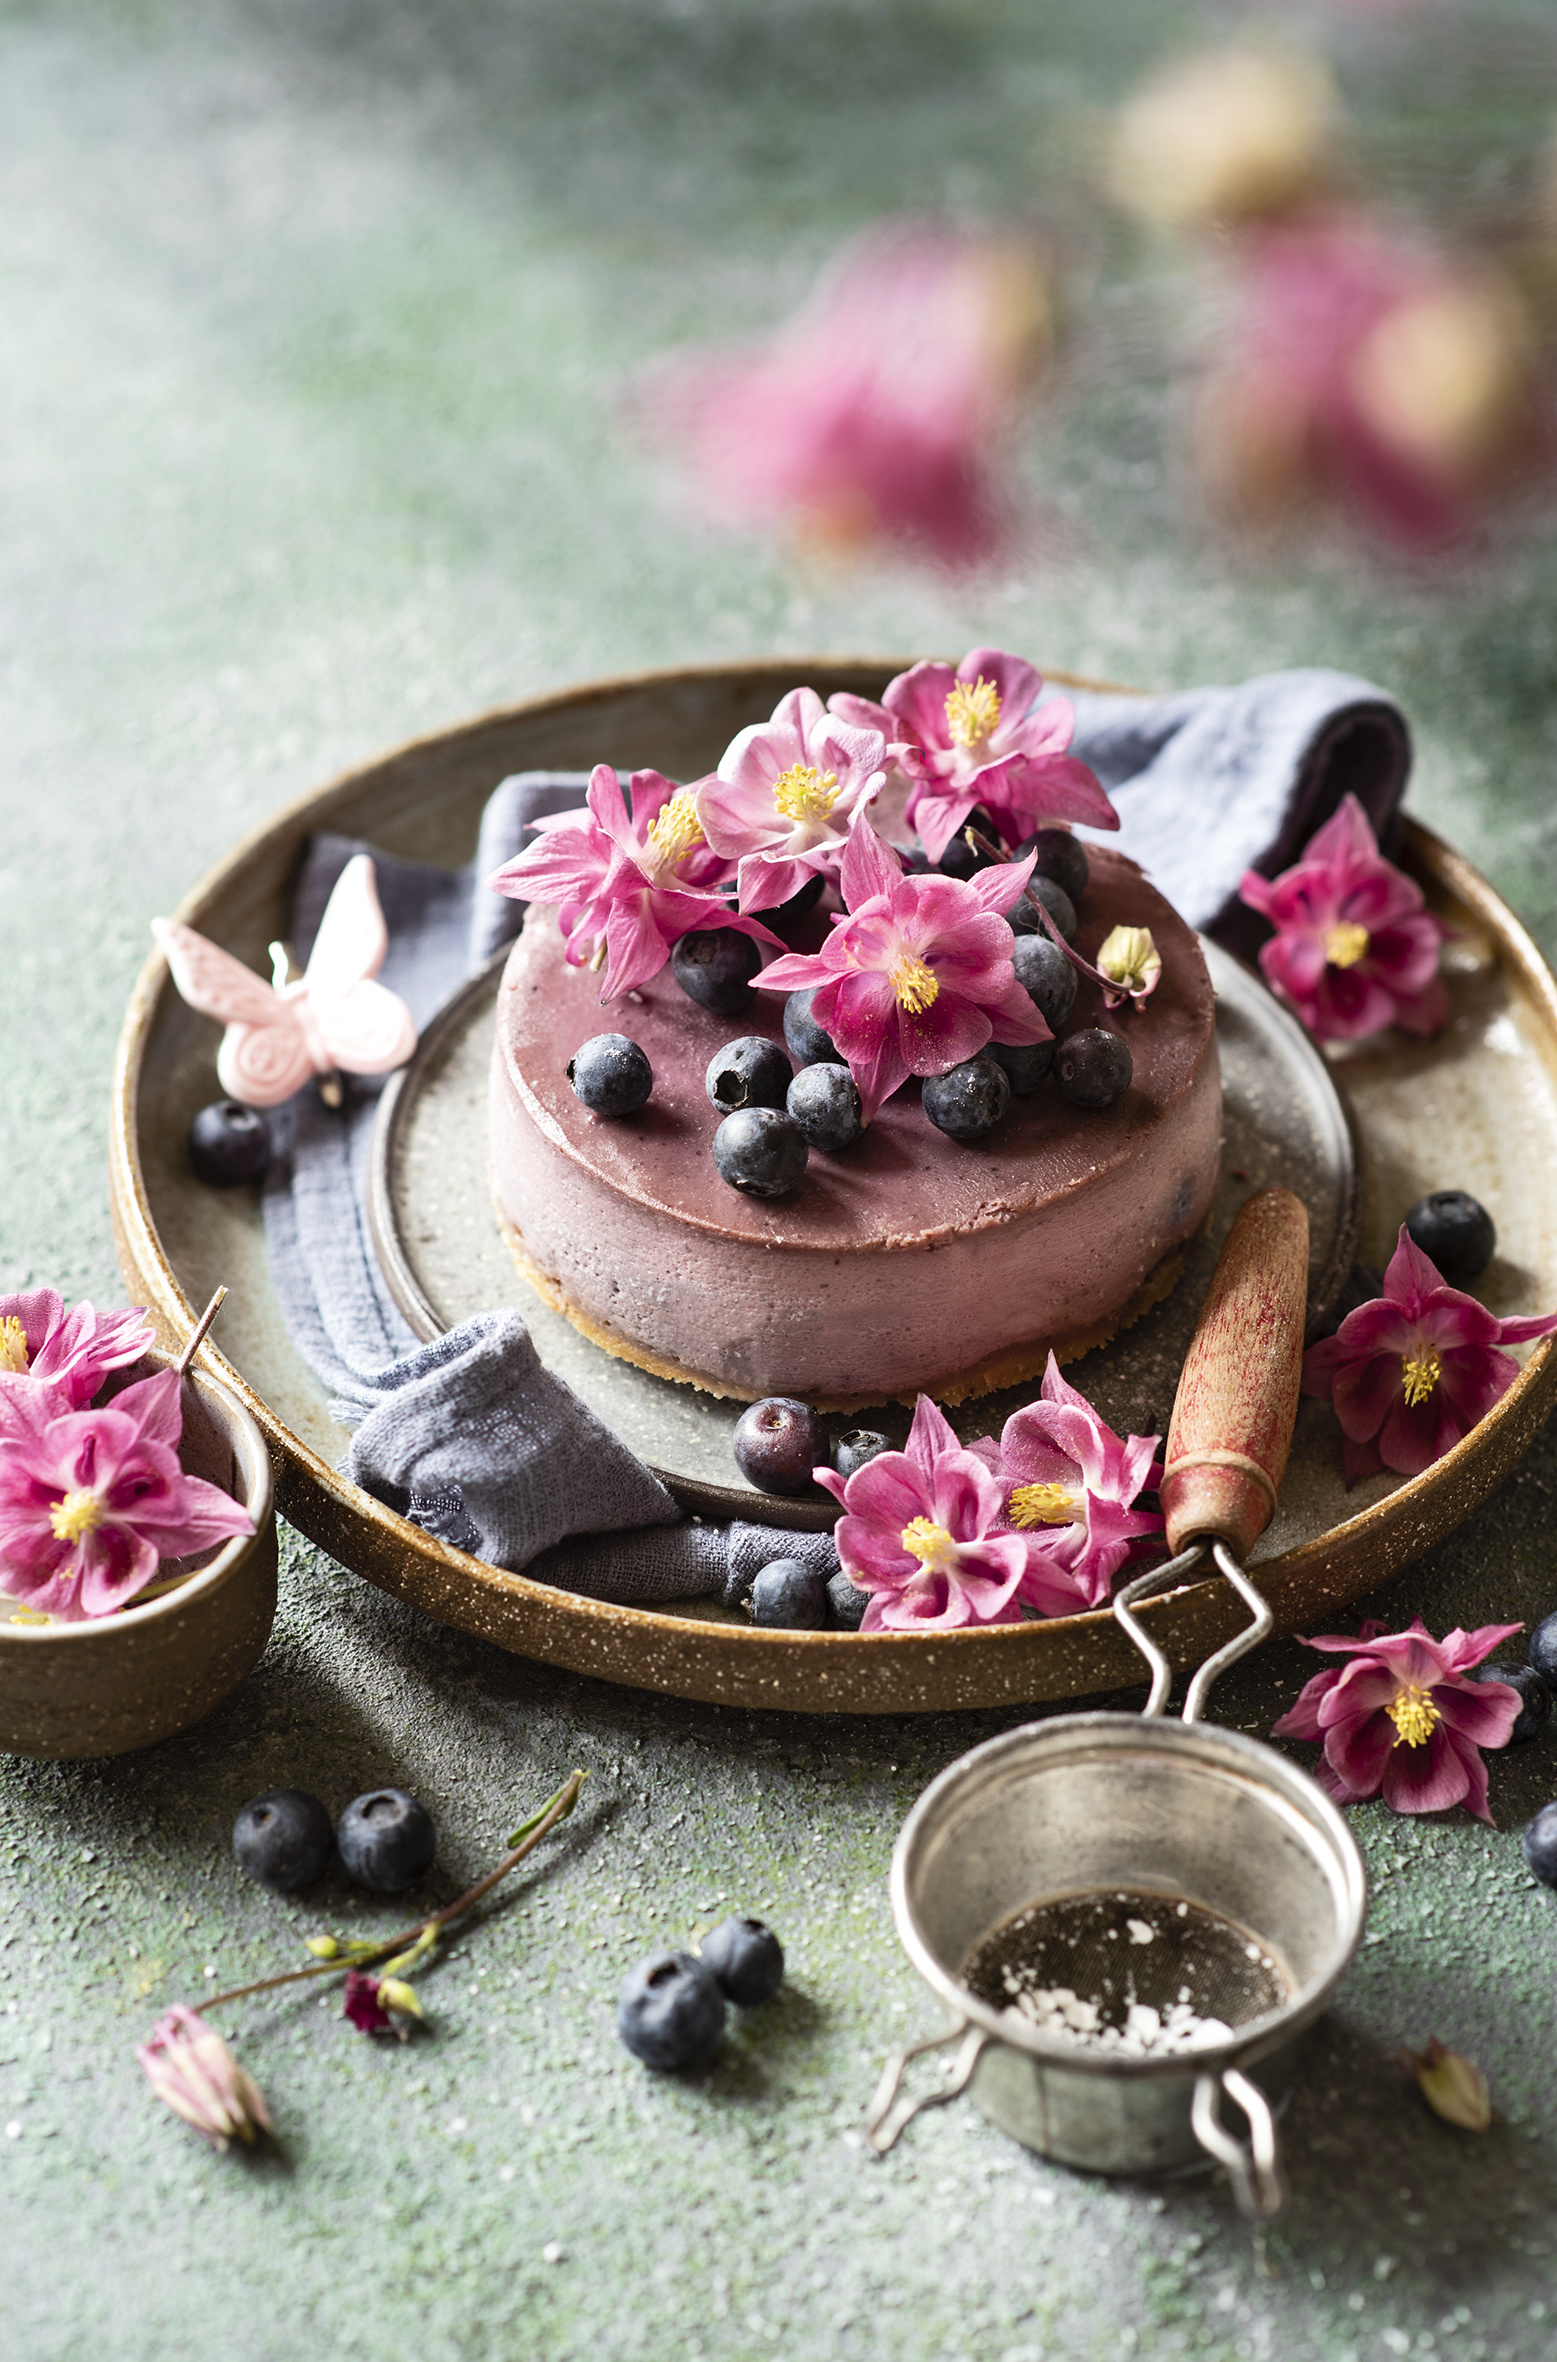 Picture Torte Petals Blueberries Food Design  for Mobile phone Cakes